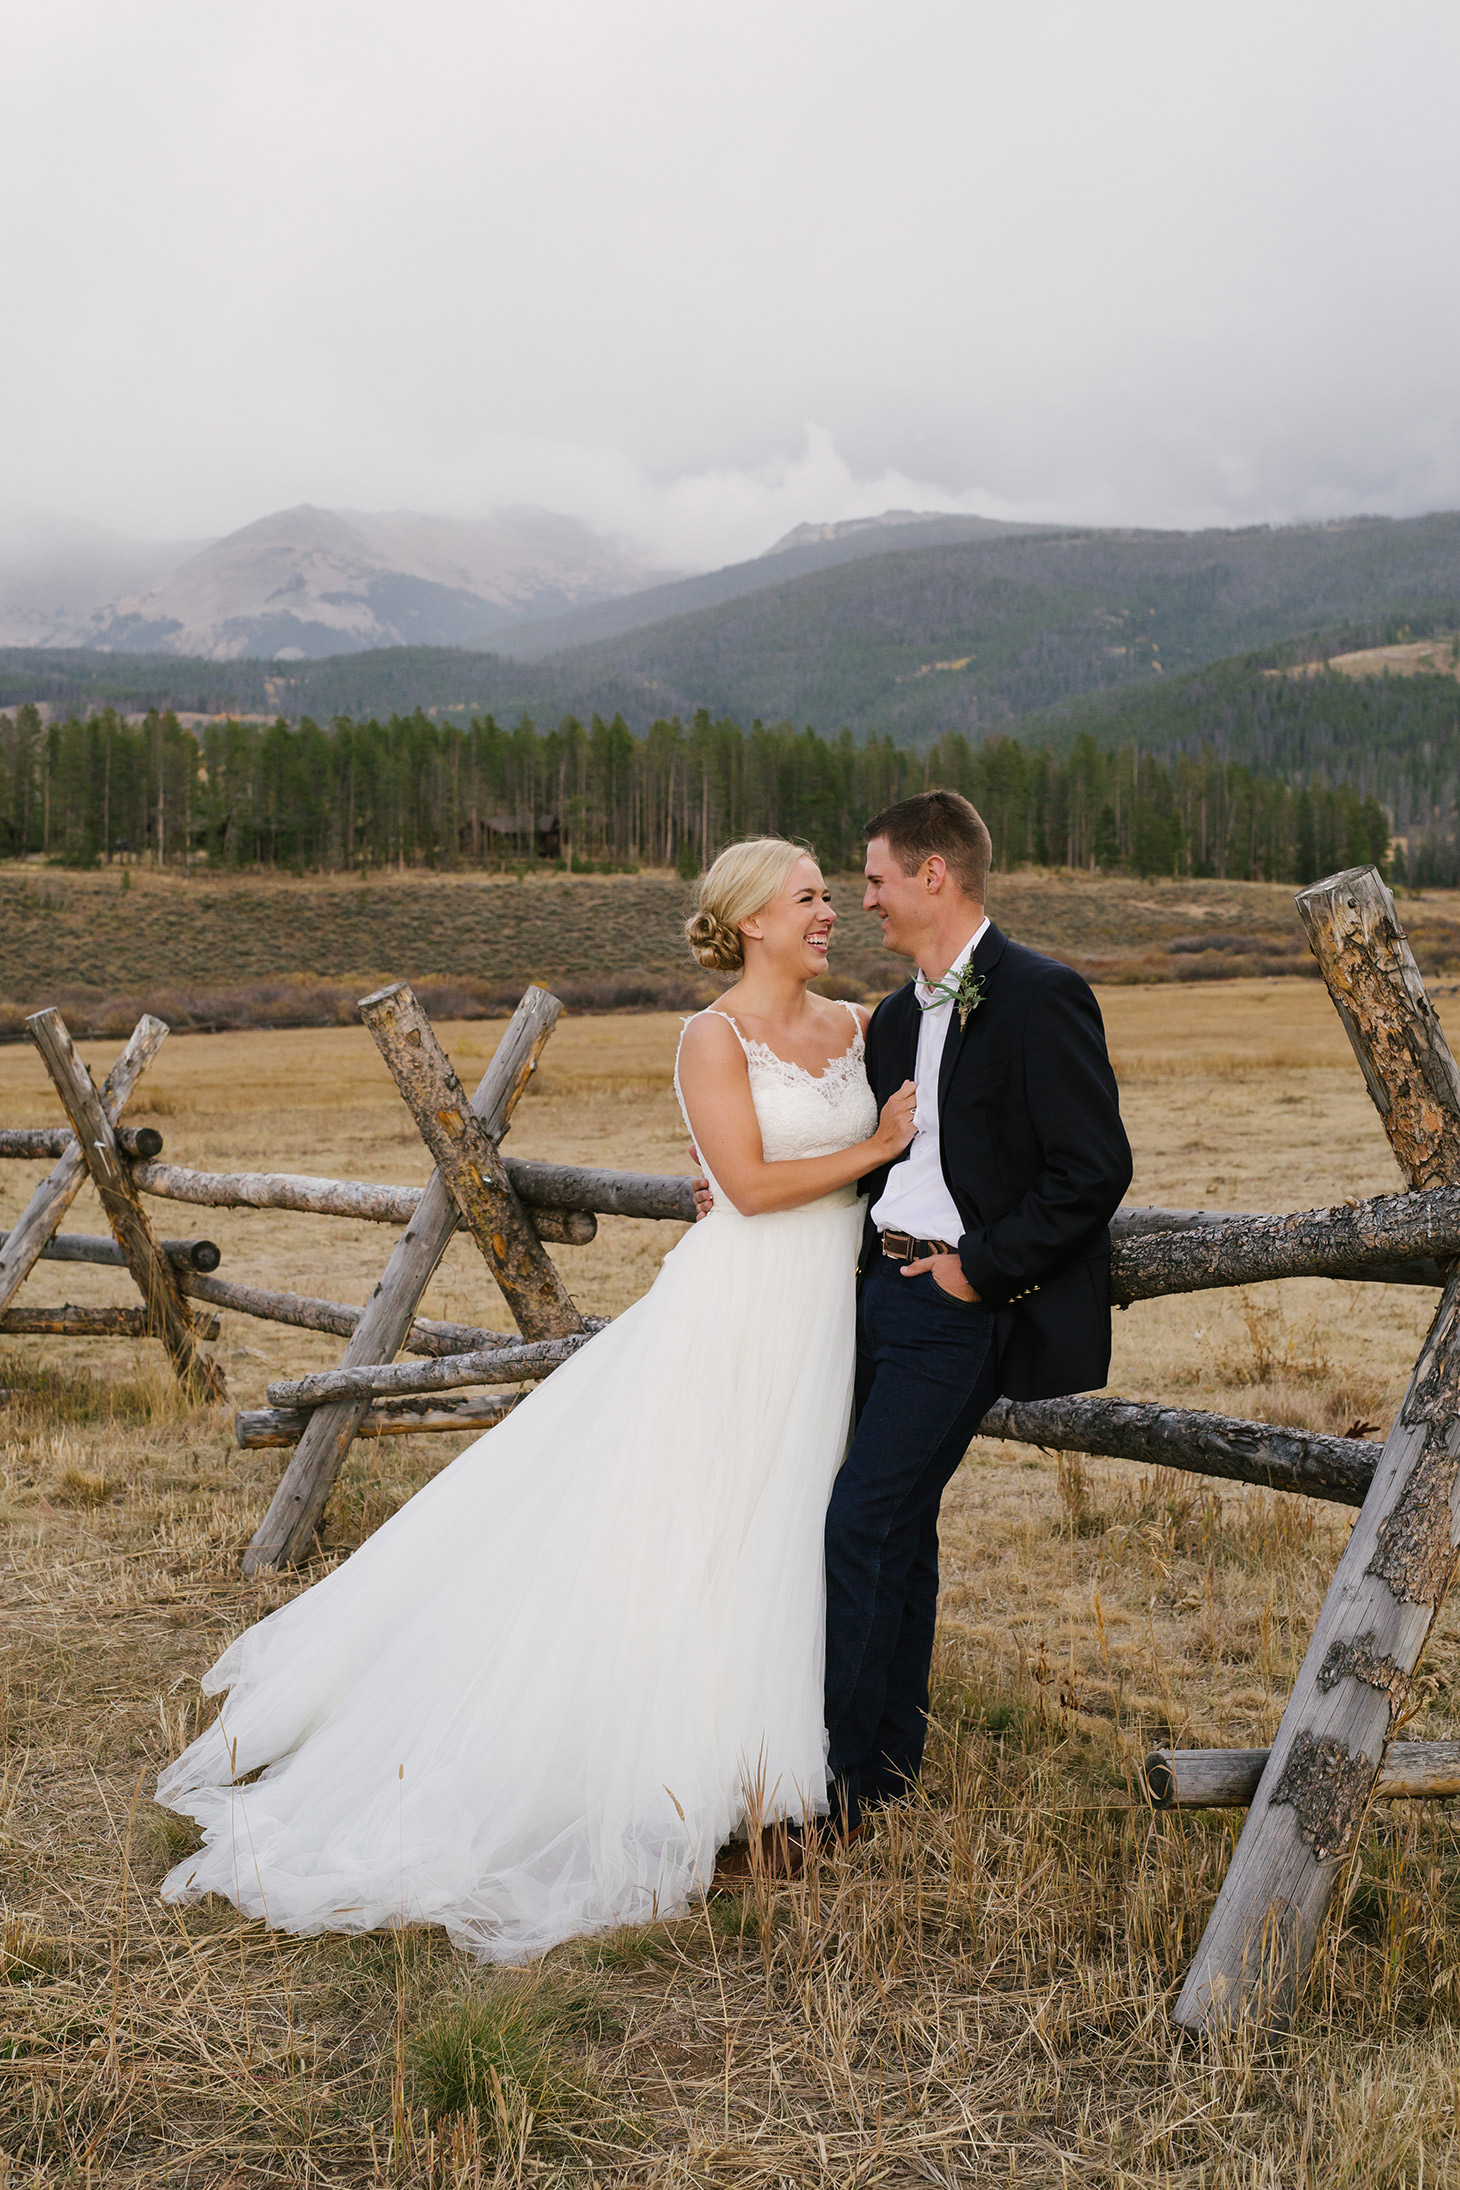 Megan-Newton-Photography-Best-Wedding-Photos-2015-272